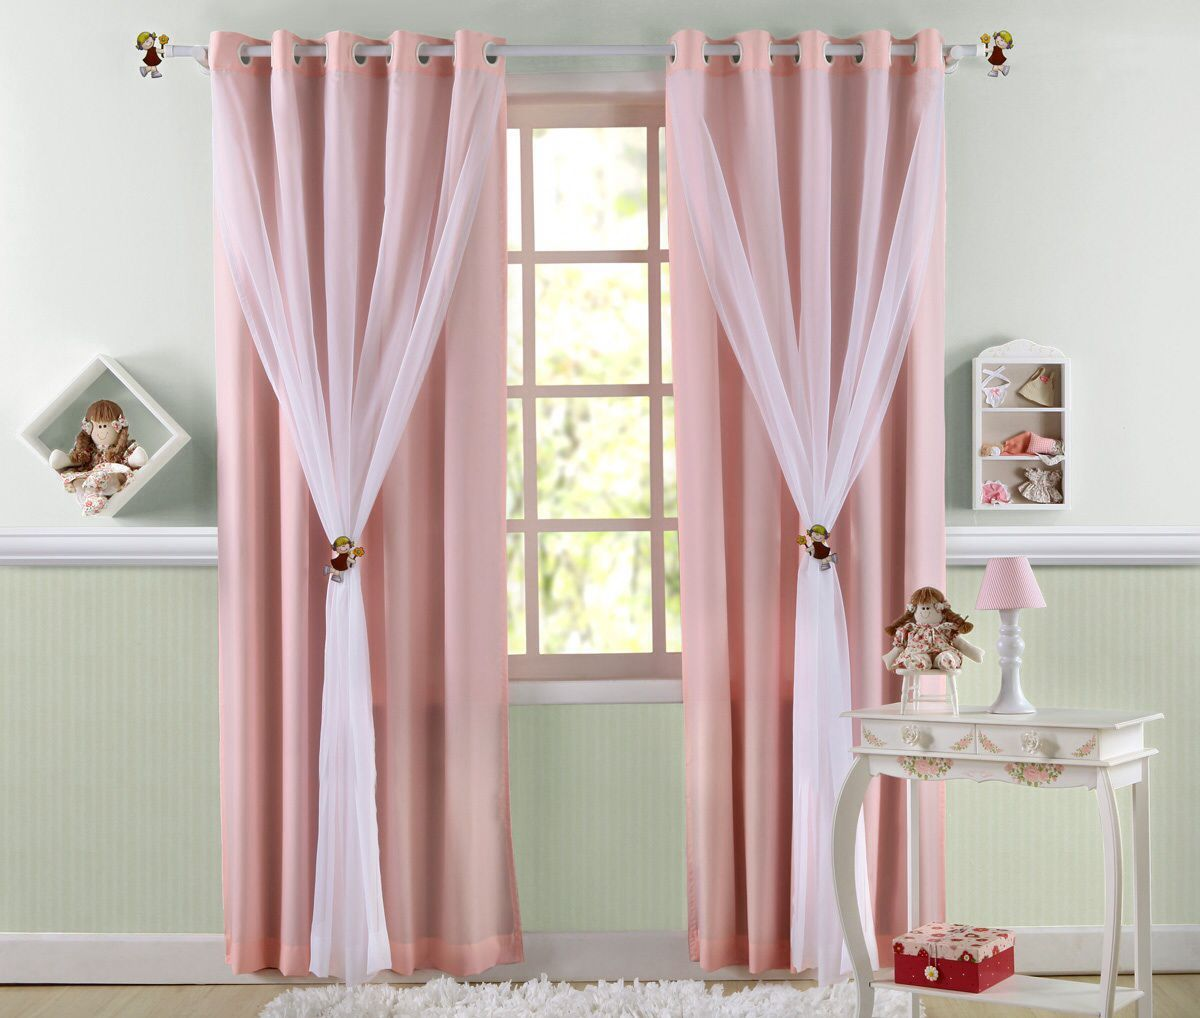 Nursery window ideas  cfddeaefffdabeafg  pixels  cortinas